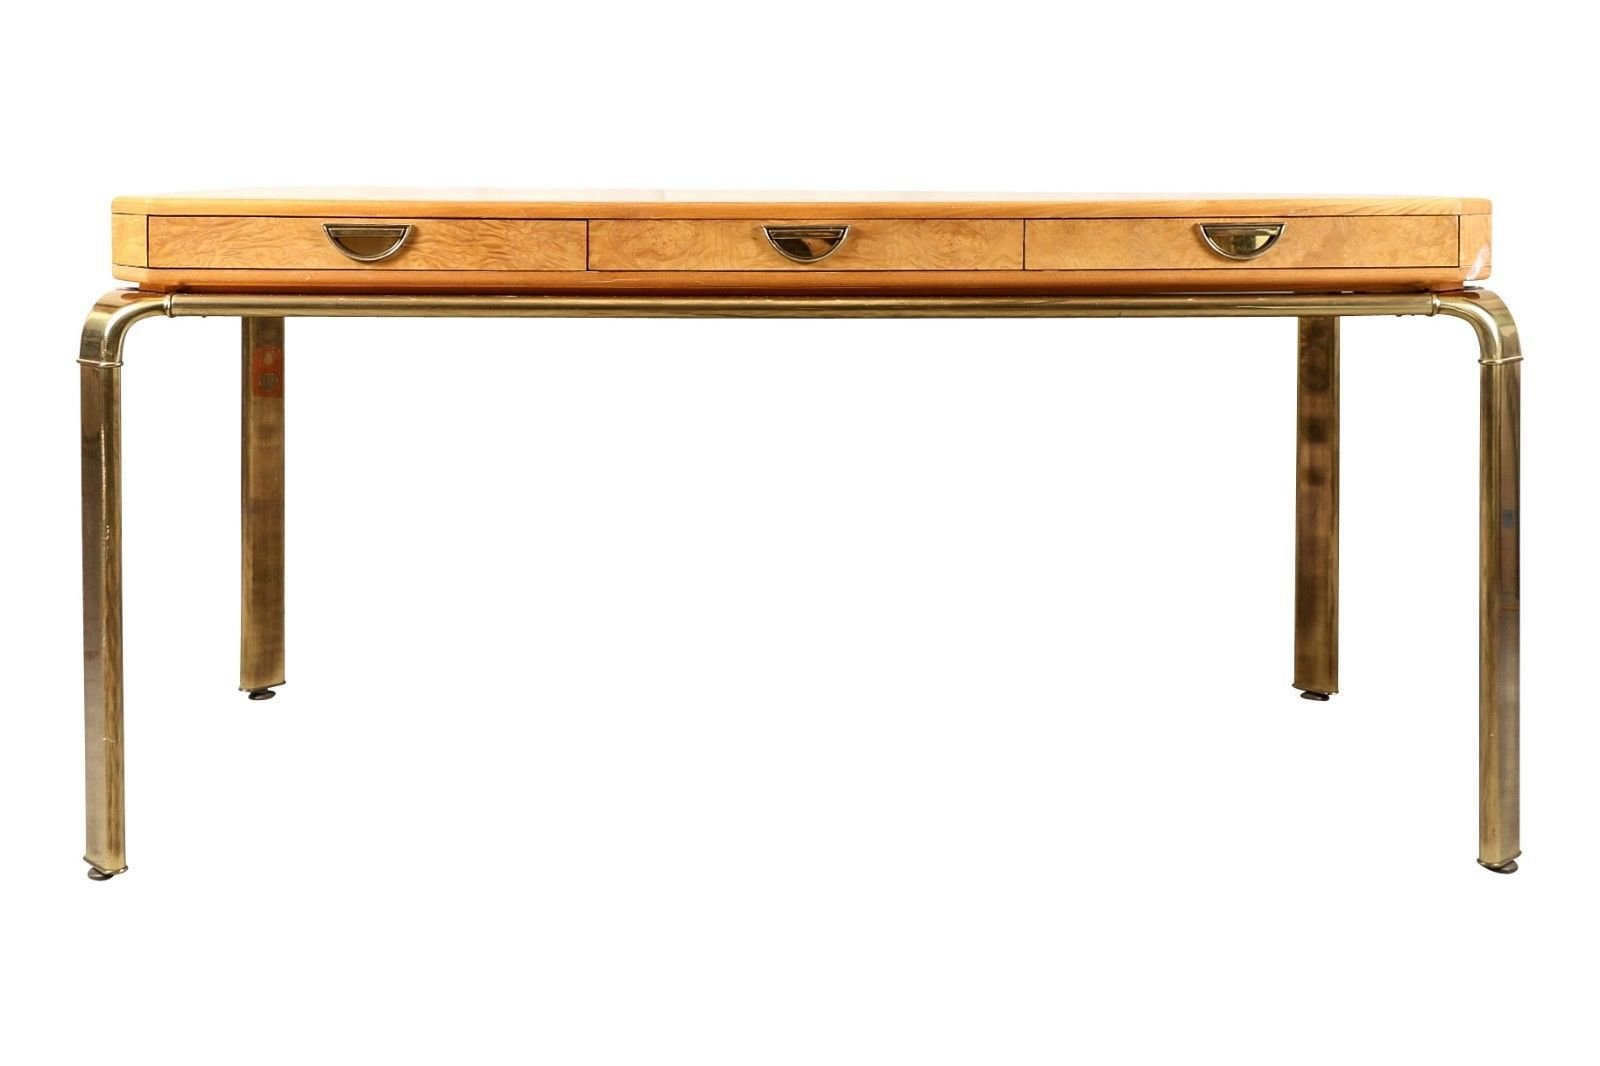 Burled Wood Desk 82961 by John Widdicomb